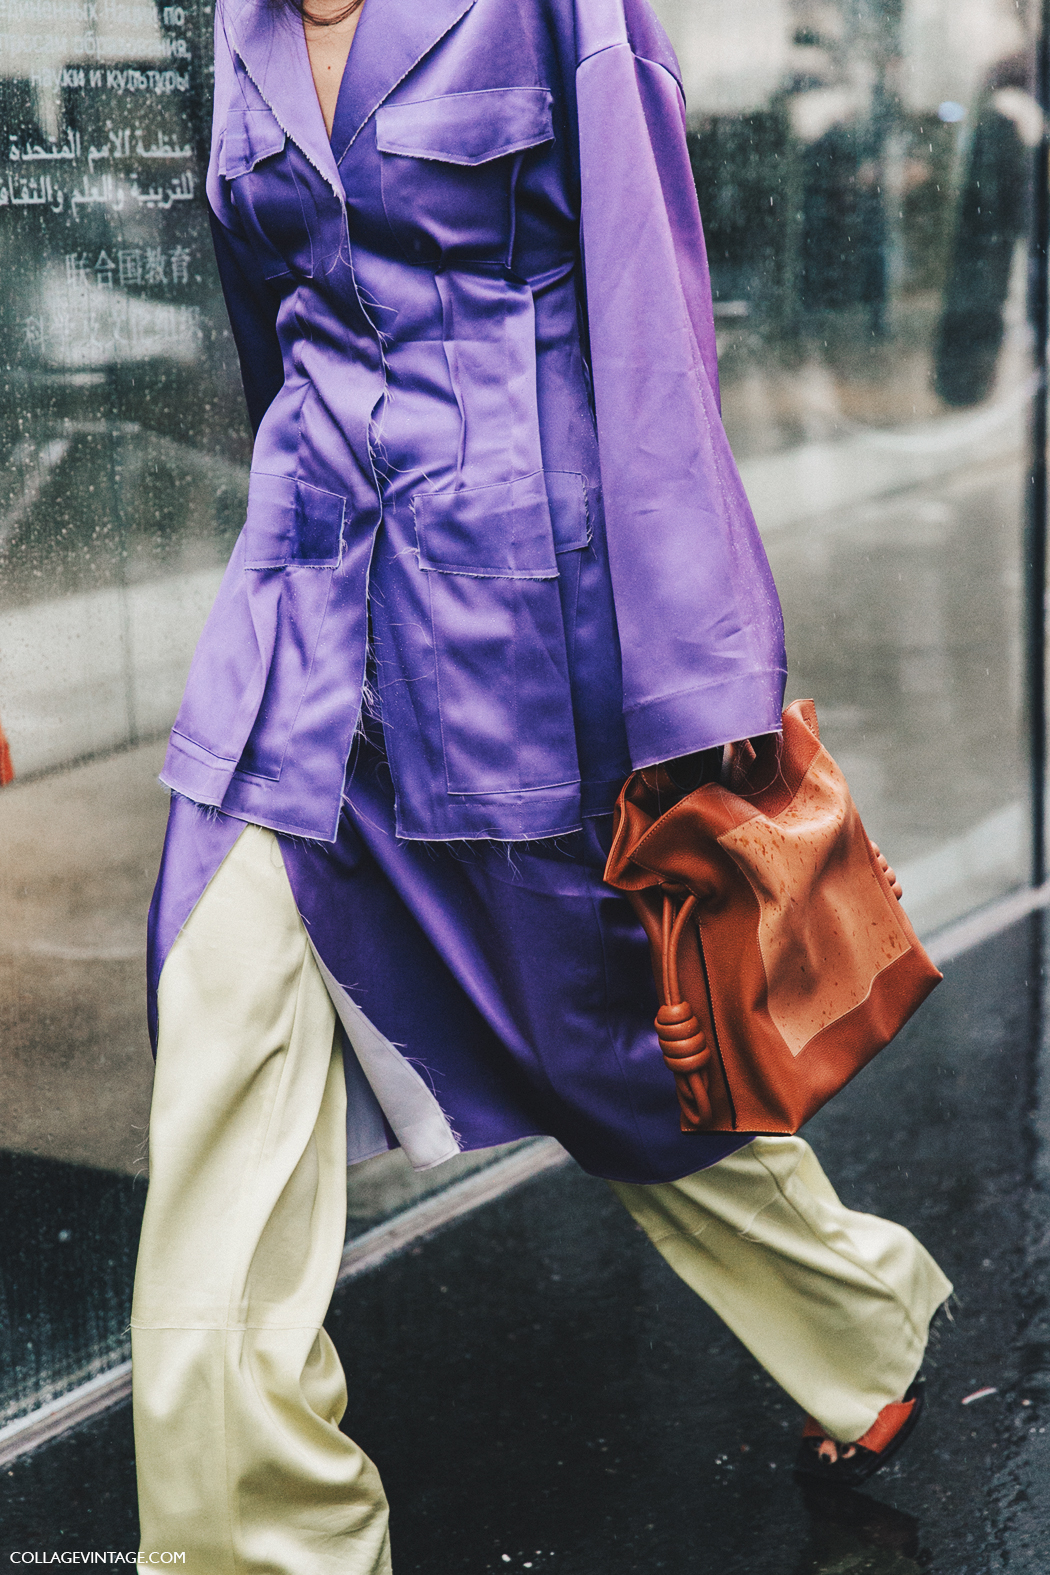 PFW-Paris_Fashion_Week_Fall_2016-Street_Style-Collage_Vintage-Gilda_Ambrossio-Purple-Loewe-1